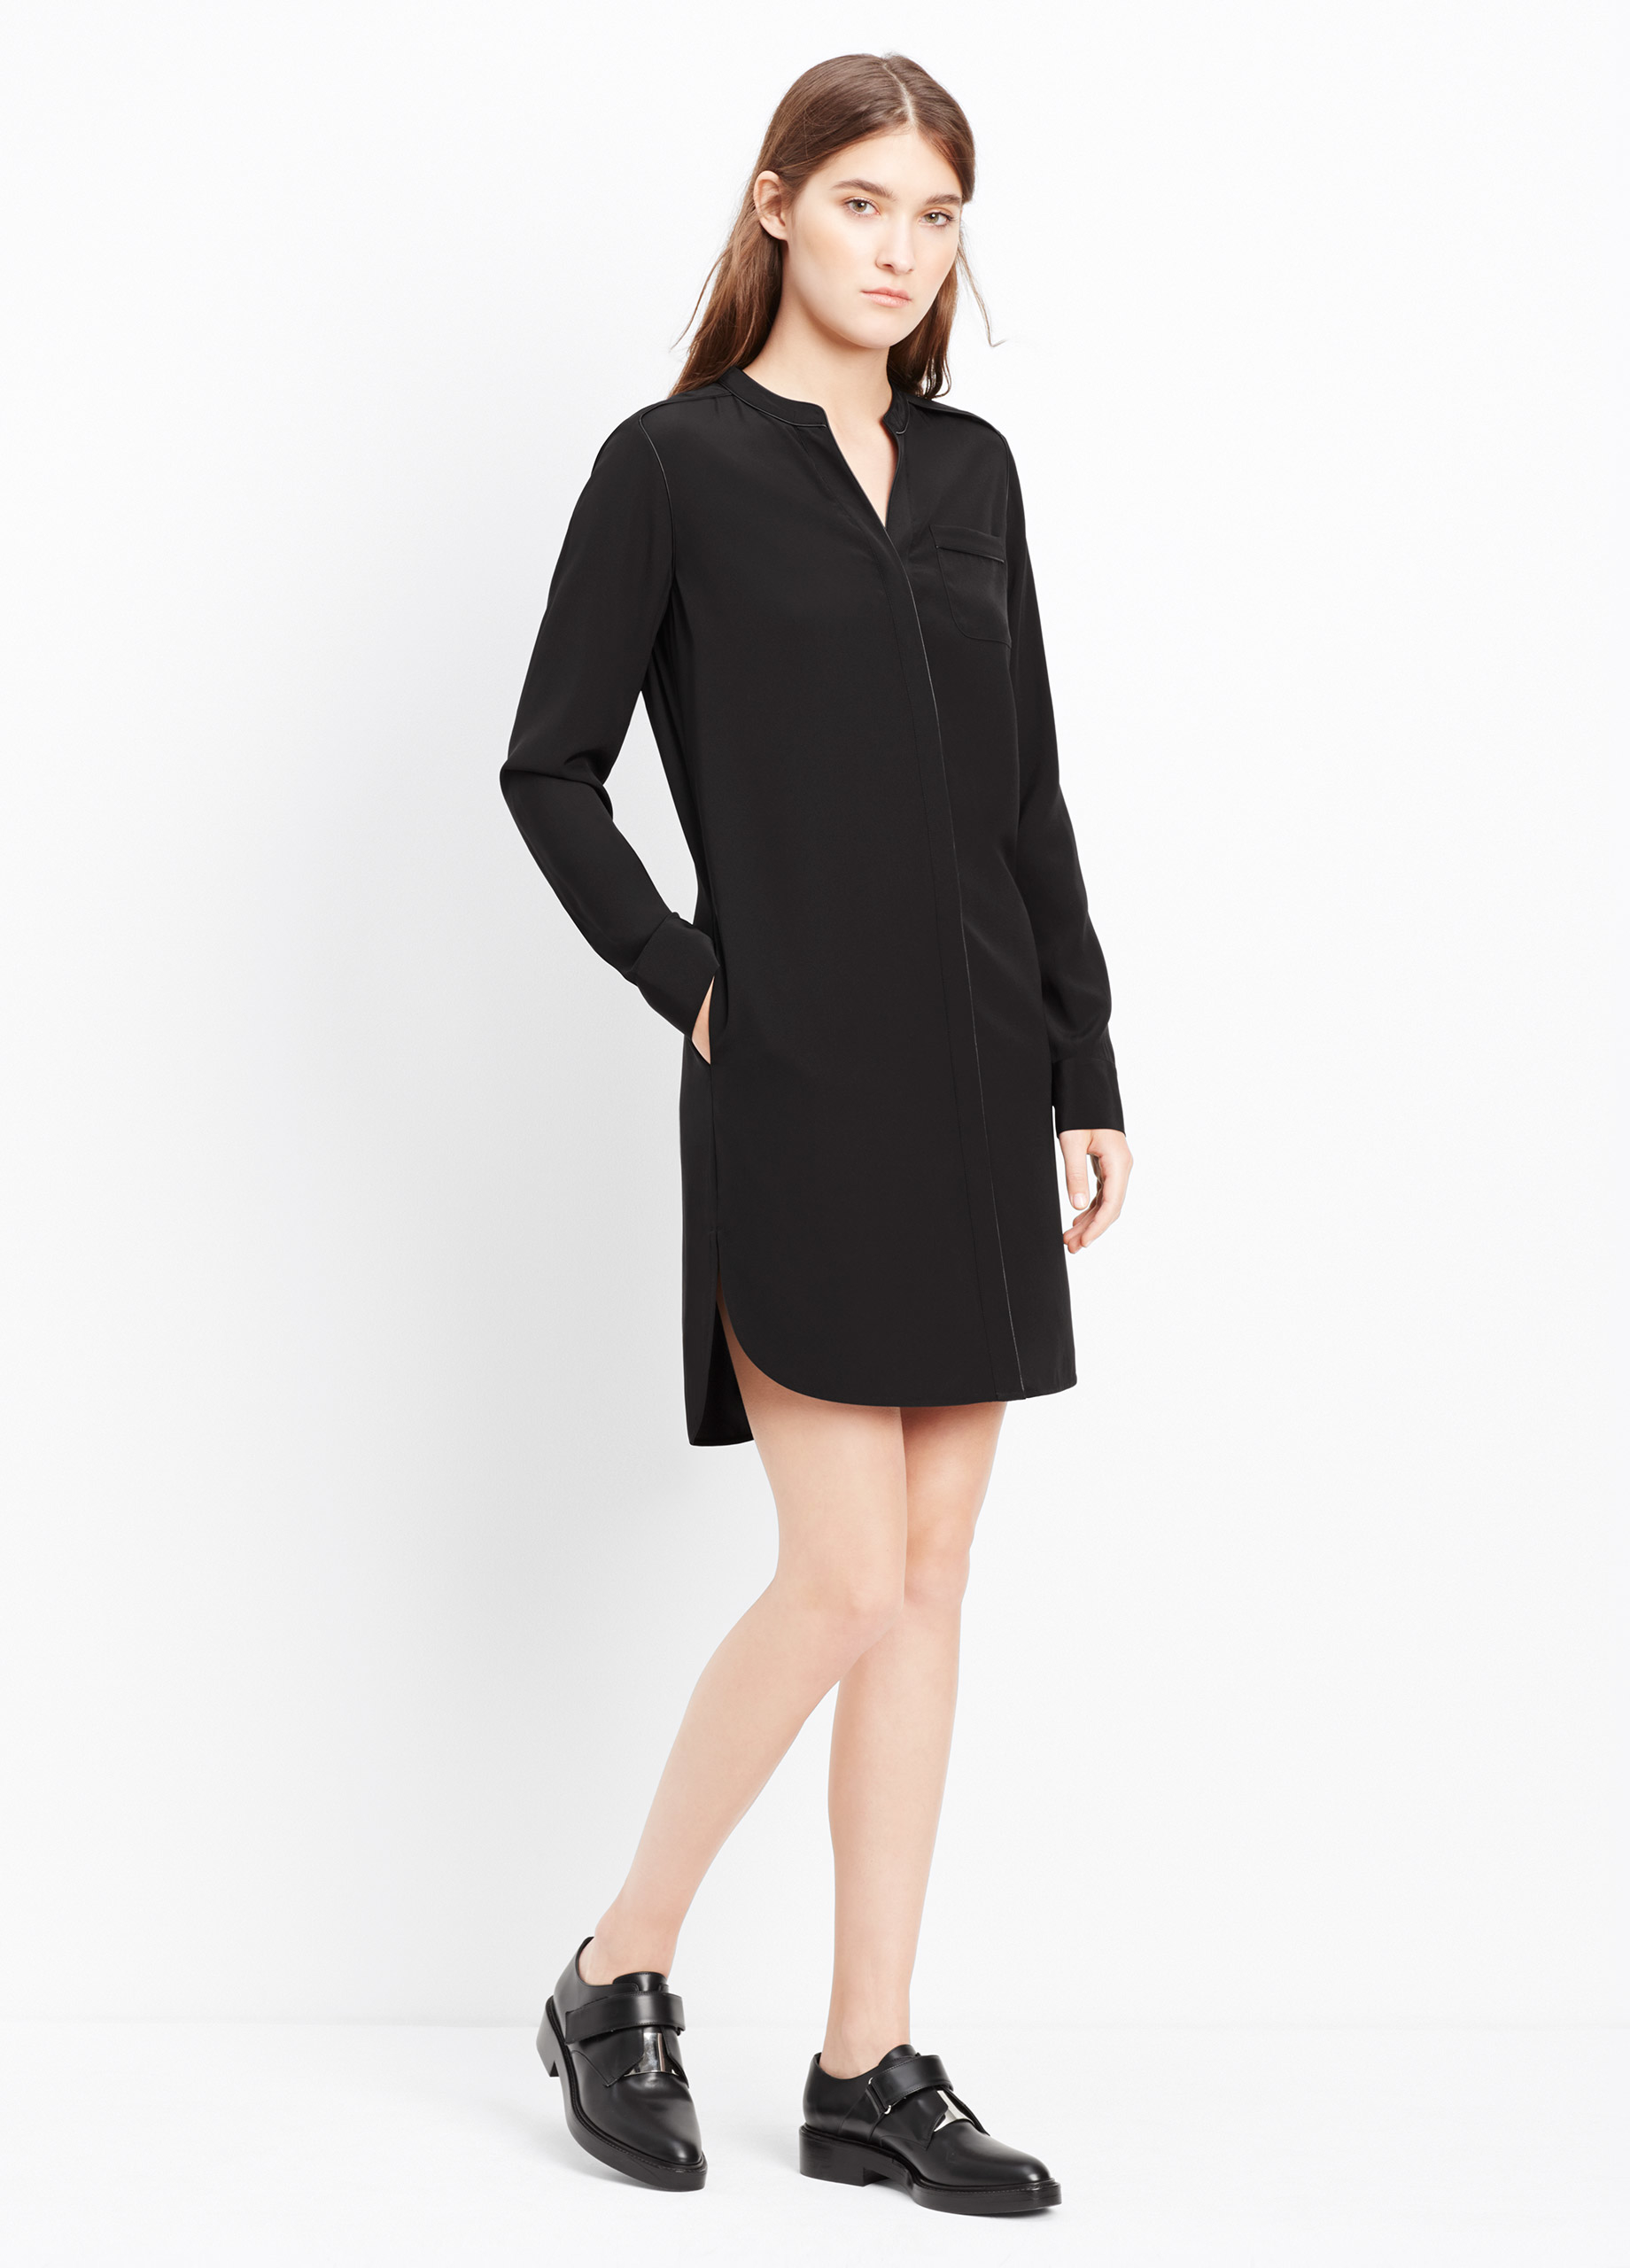 8a443d2a99a6bd Black Silk Shirt Dress – EDGE Engineering and Consulting Limited